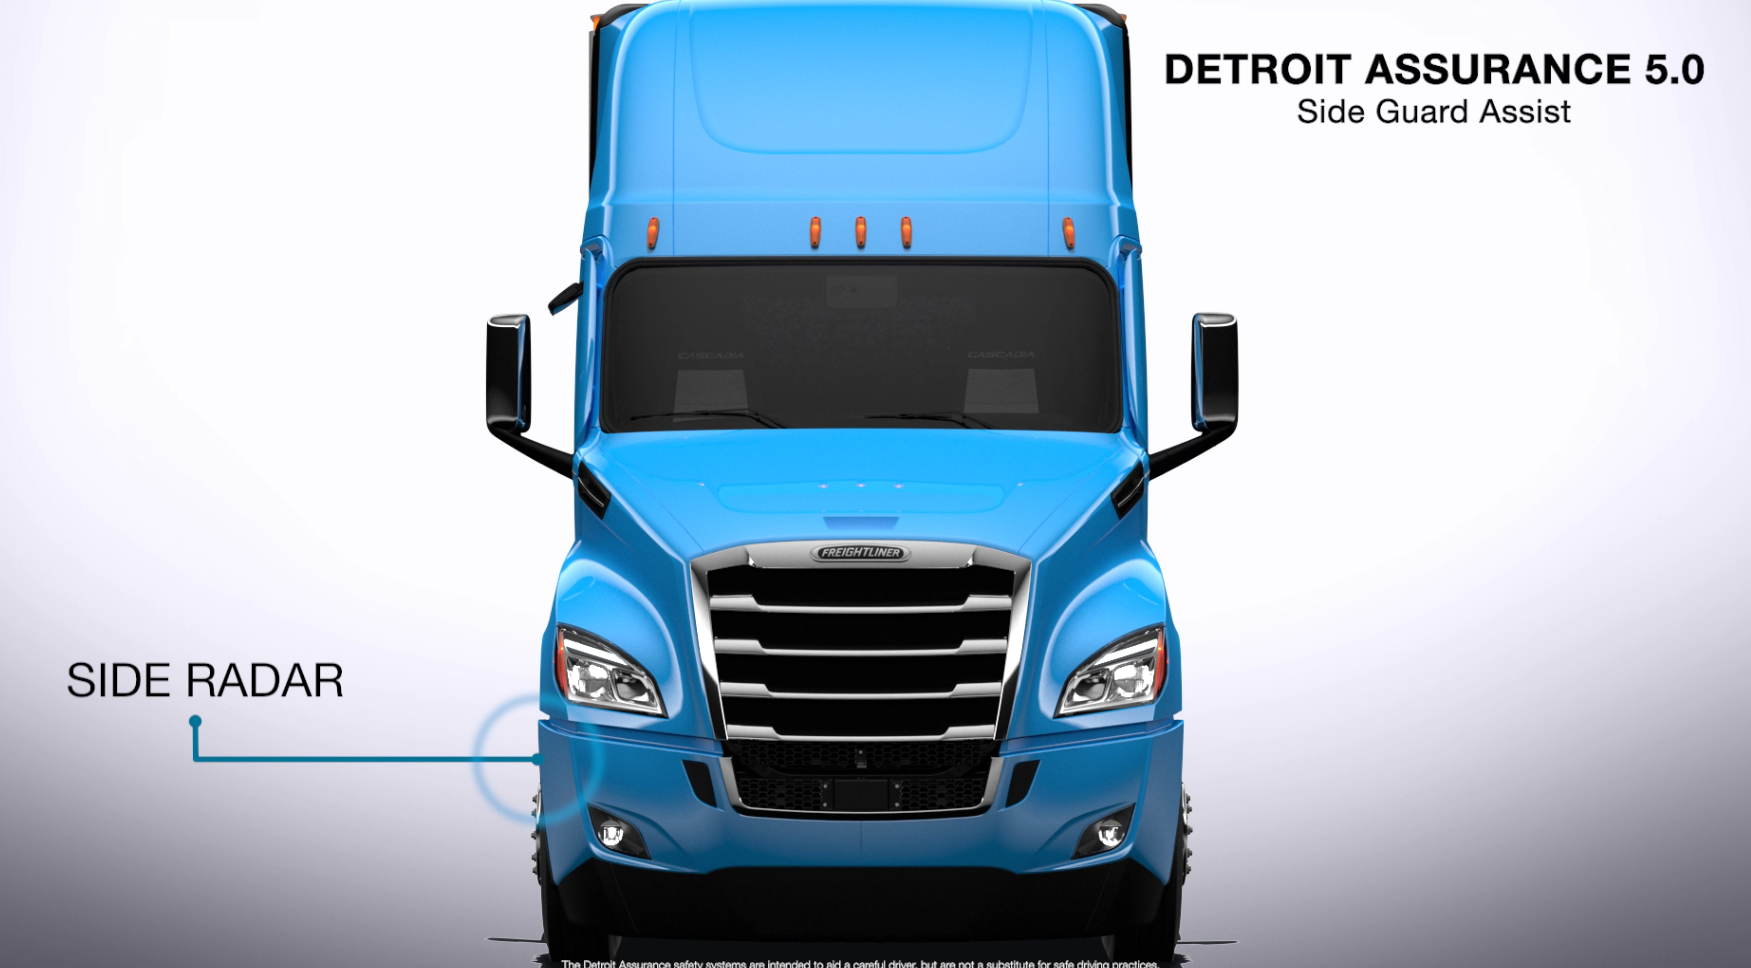 Detroit Assurance 5.0 Side Guard Assist